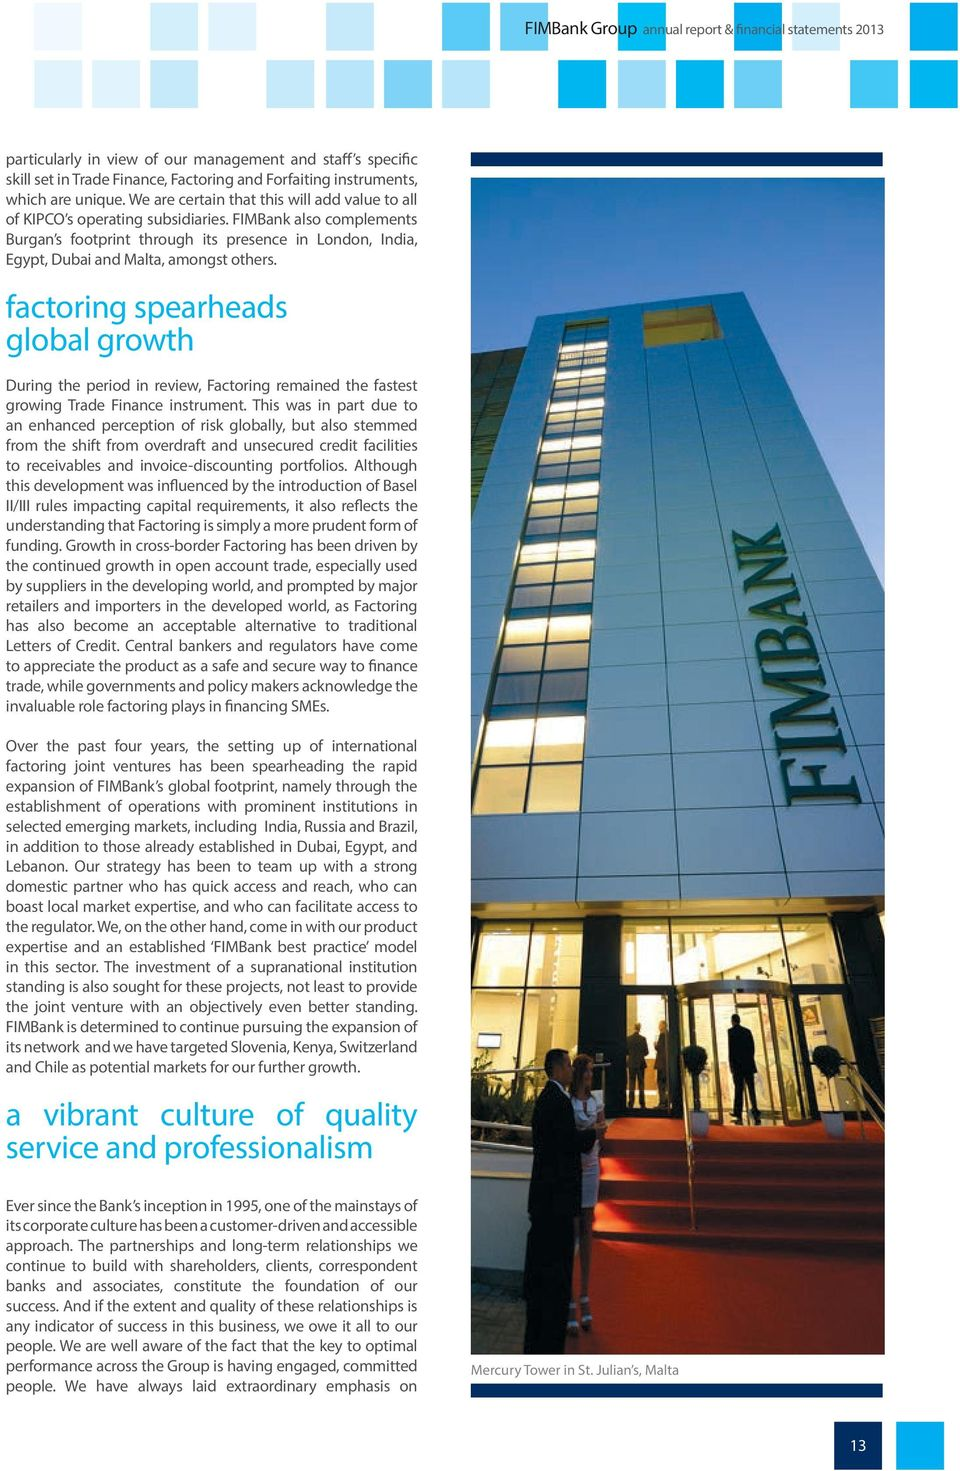 FIMBank also complements Burgan s footprint through its presence in London, India, Egypt, Dubai and Malta, amongst others.